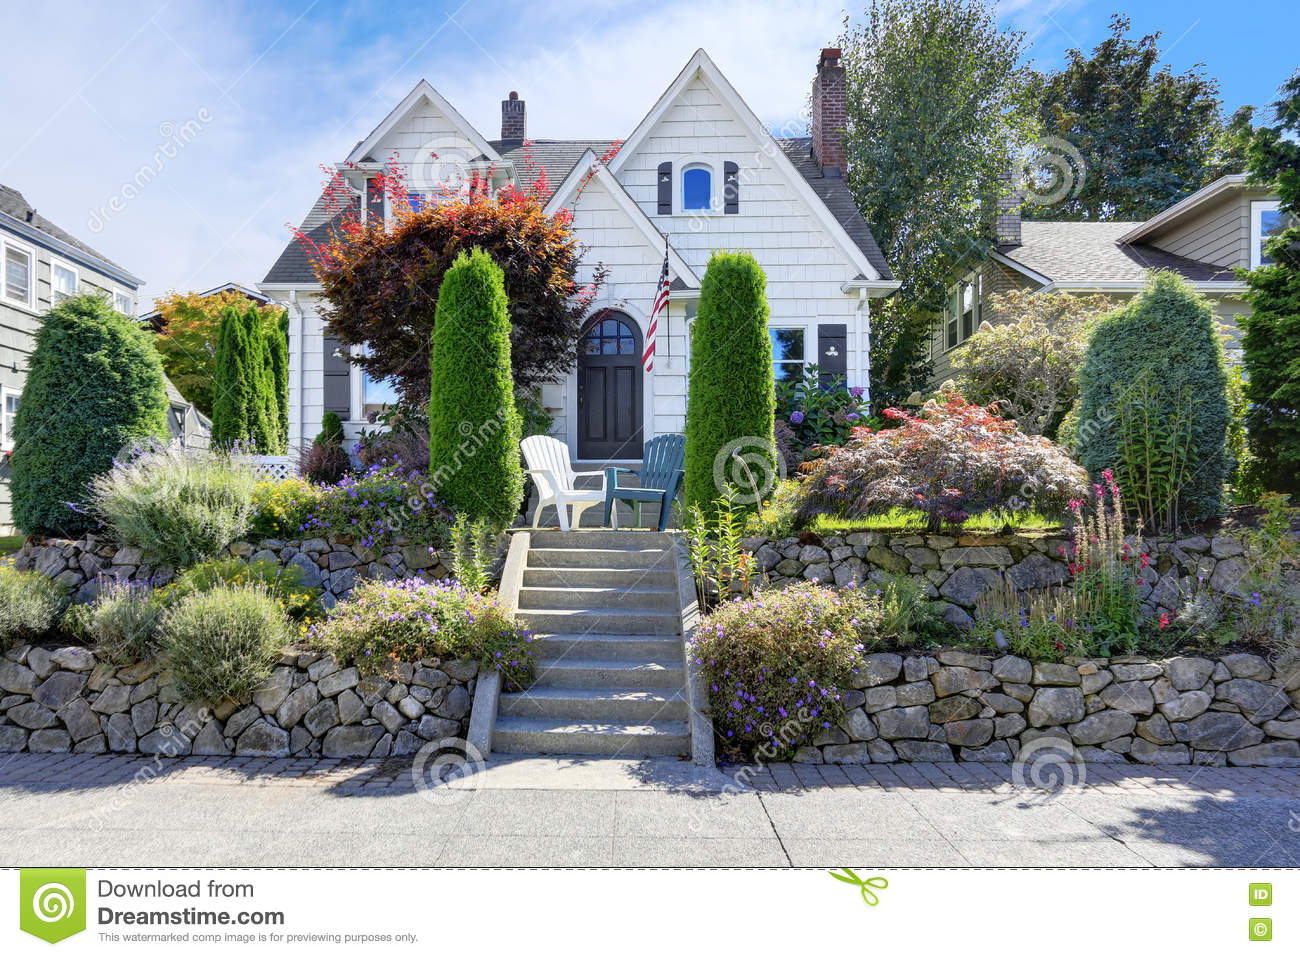 Top American Craftsman Style Home - american-craftsman-style-home-beautiful-landscape-design-trimmed-shrubs-rocks-flowers-northwest-usa-80525551  Best Photo Reference_3365.jpg